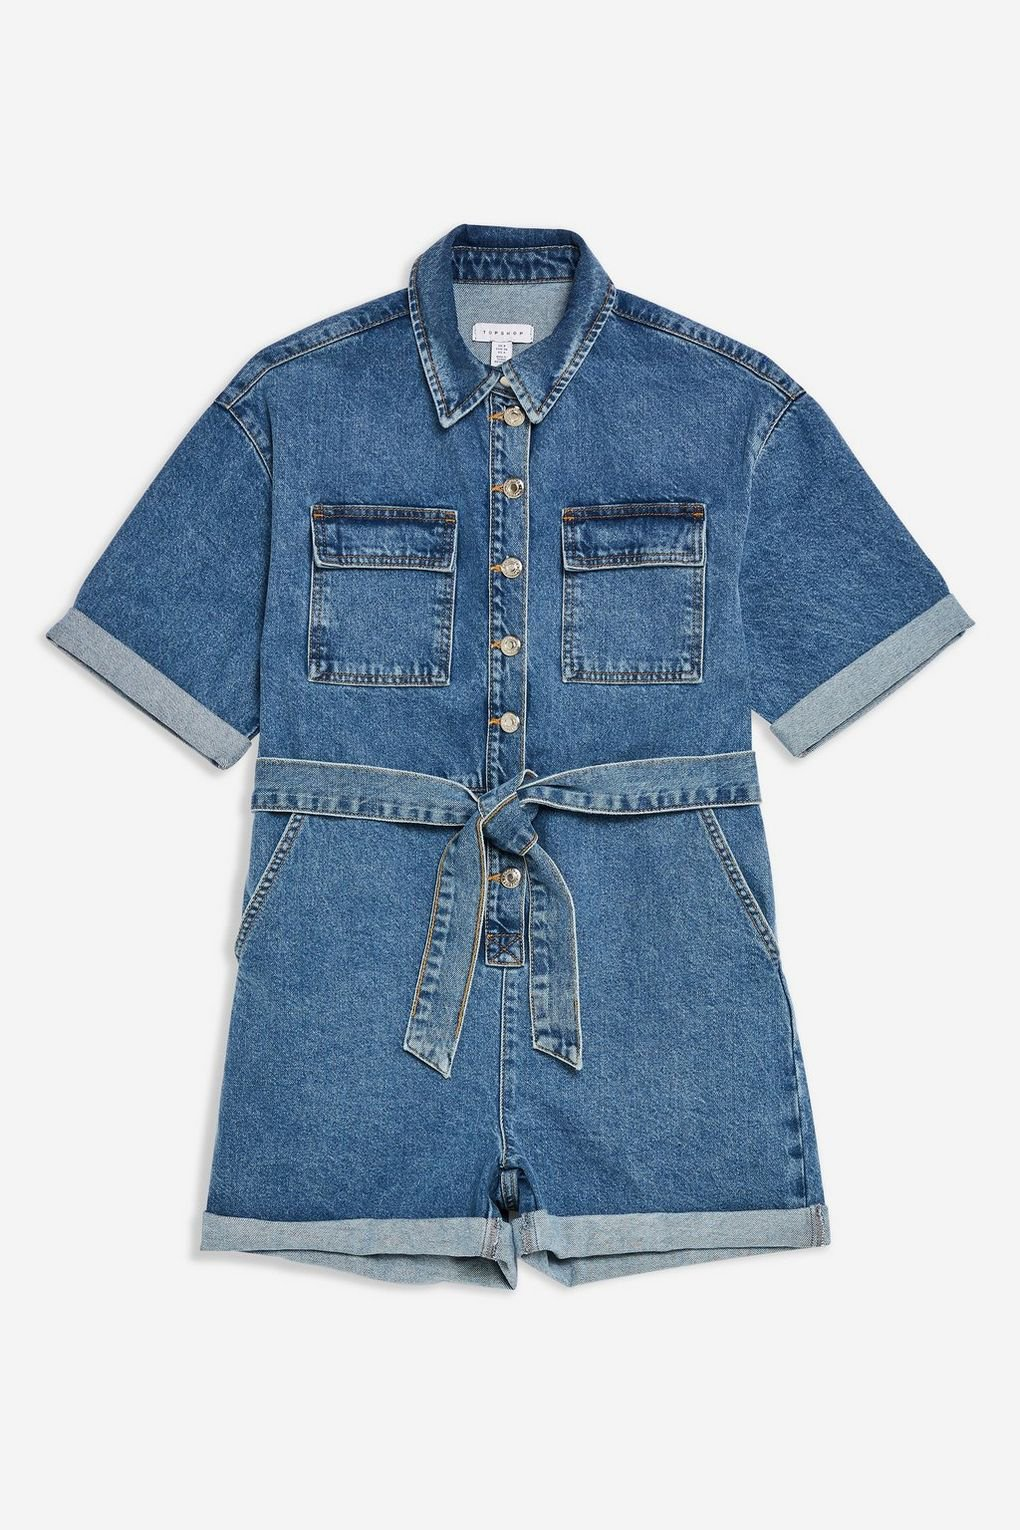 Blue Denim Button Playsuit - Rompers & Jumpsuits - Clothing - Topshop USA